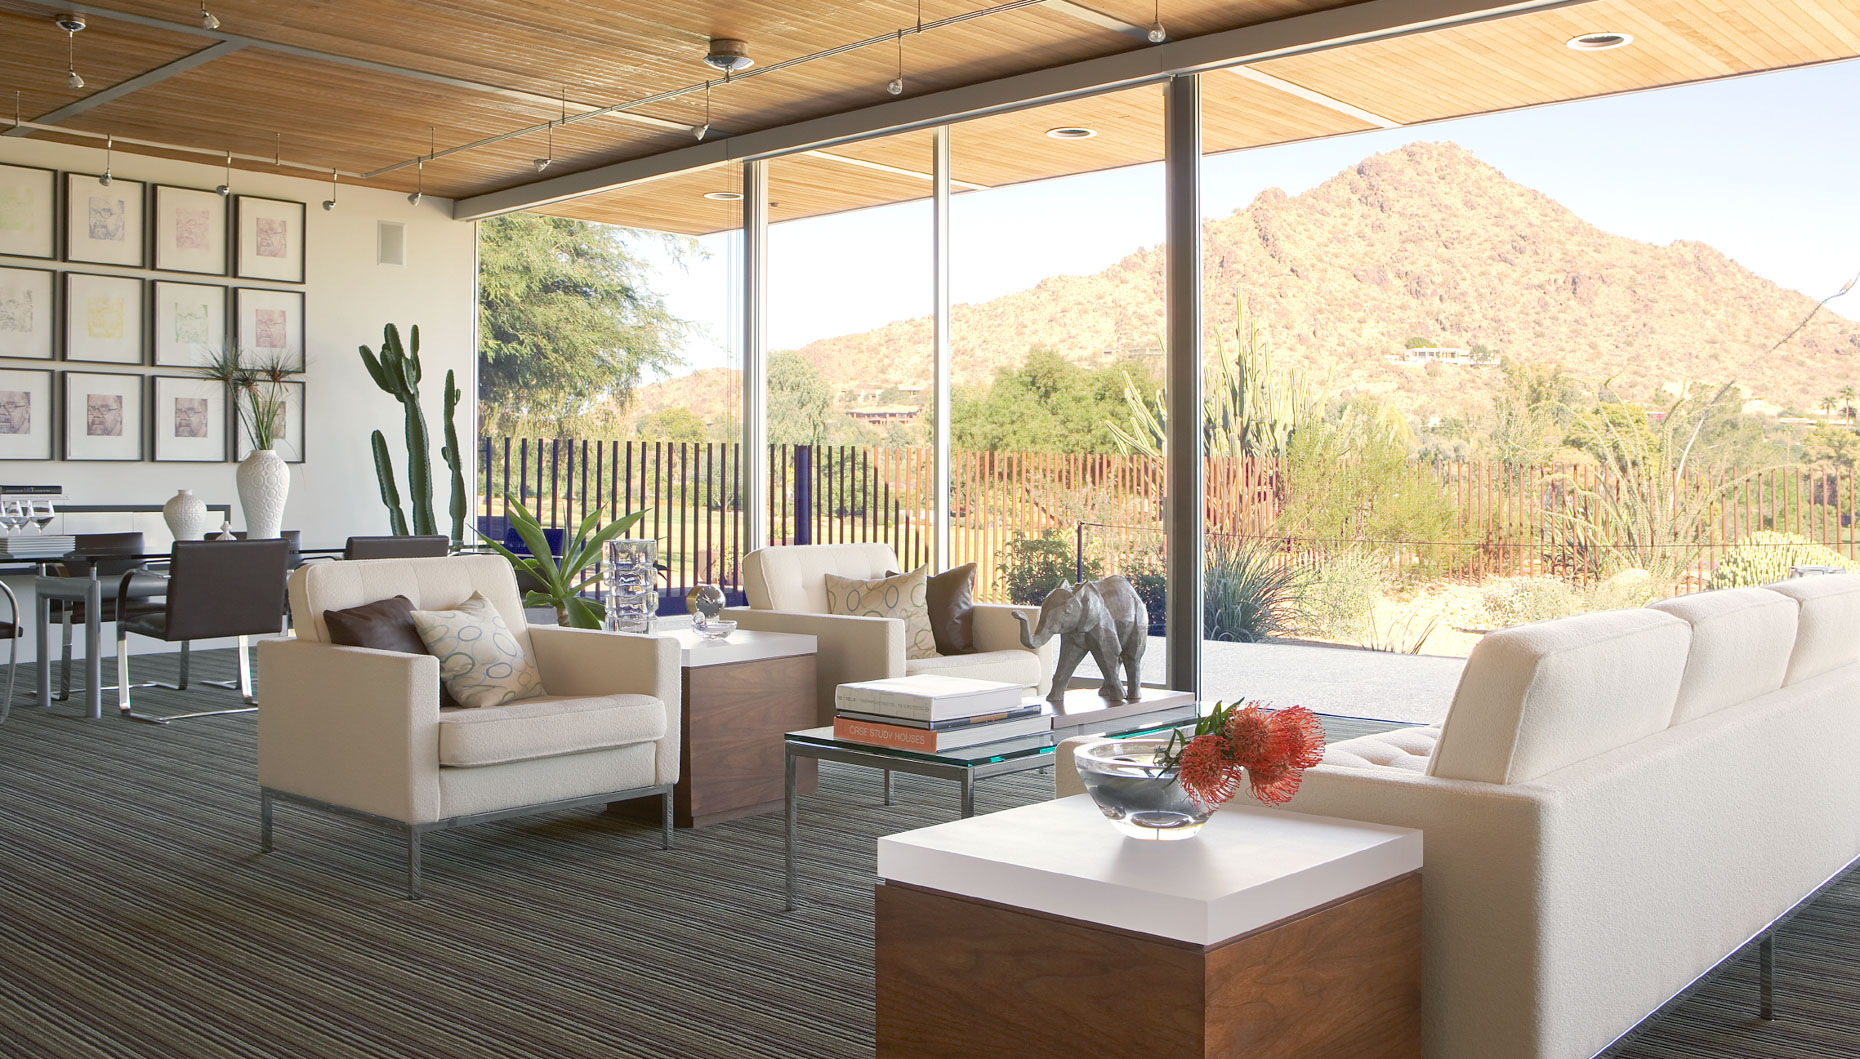 living room with white couches and view of desert landscape